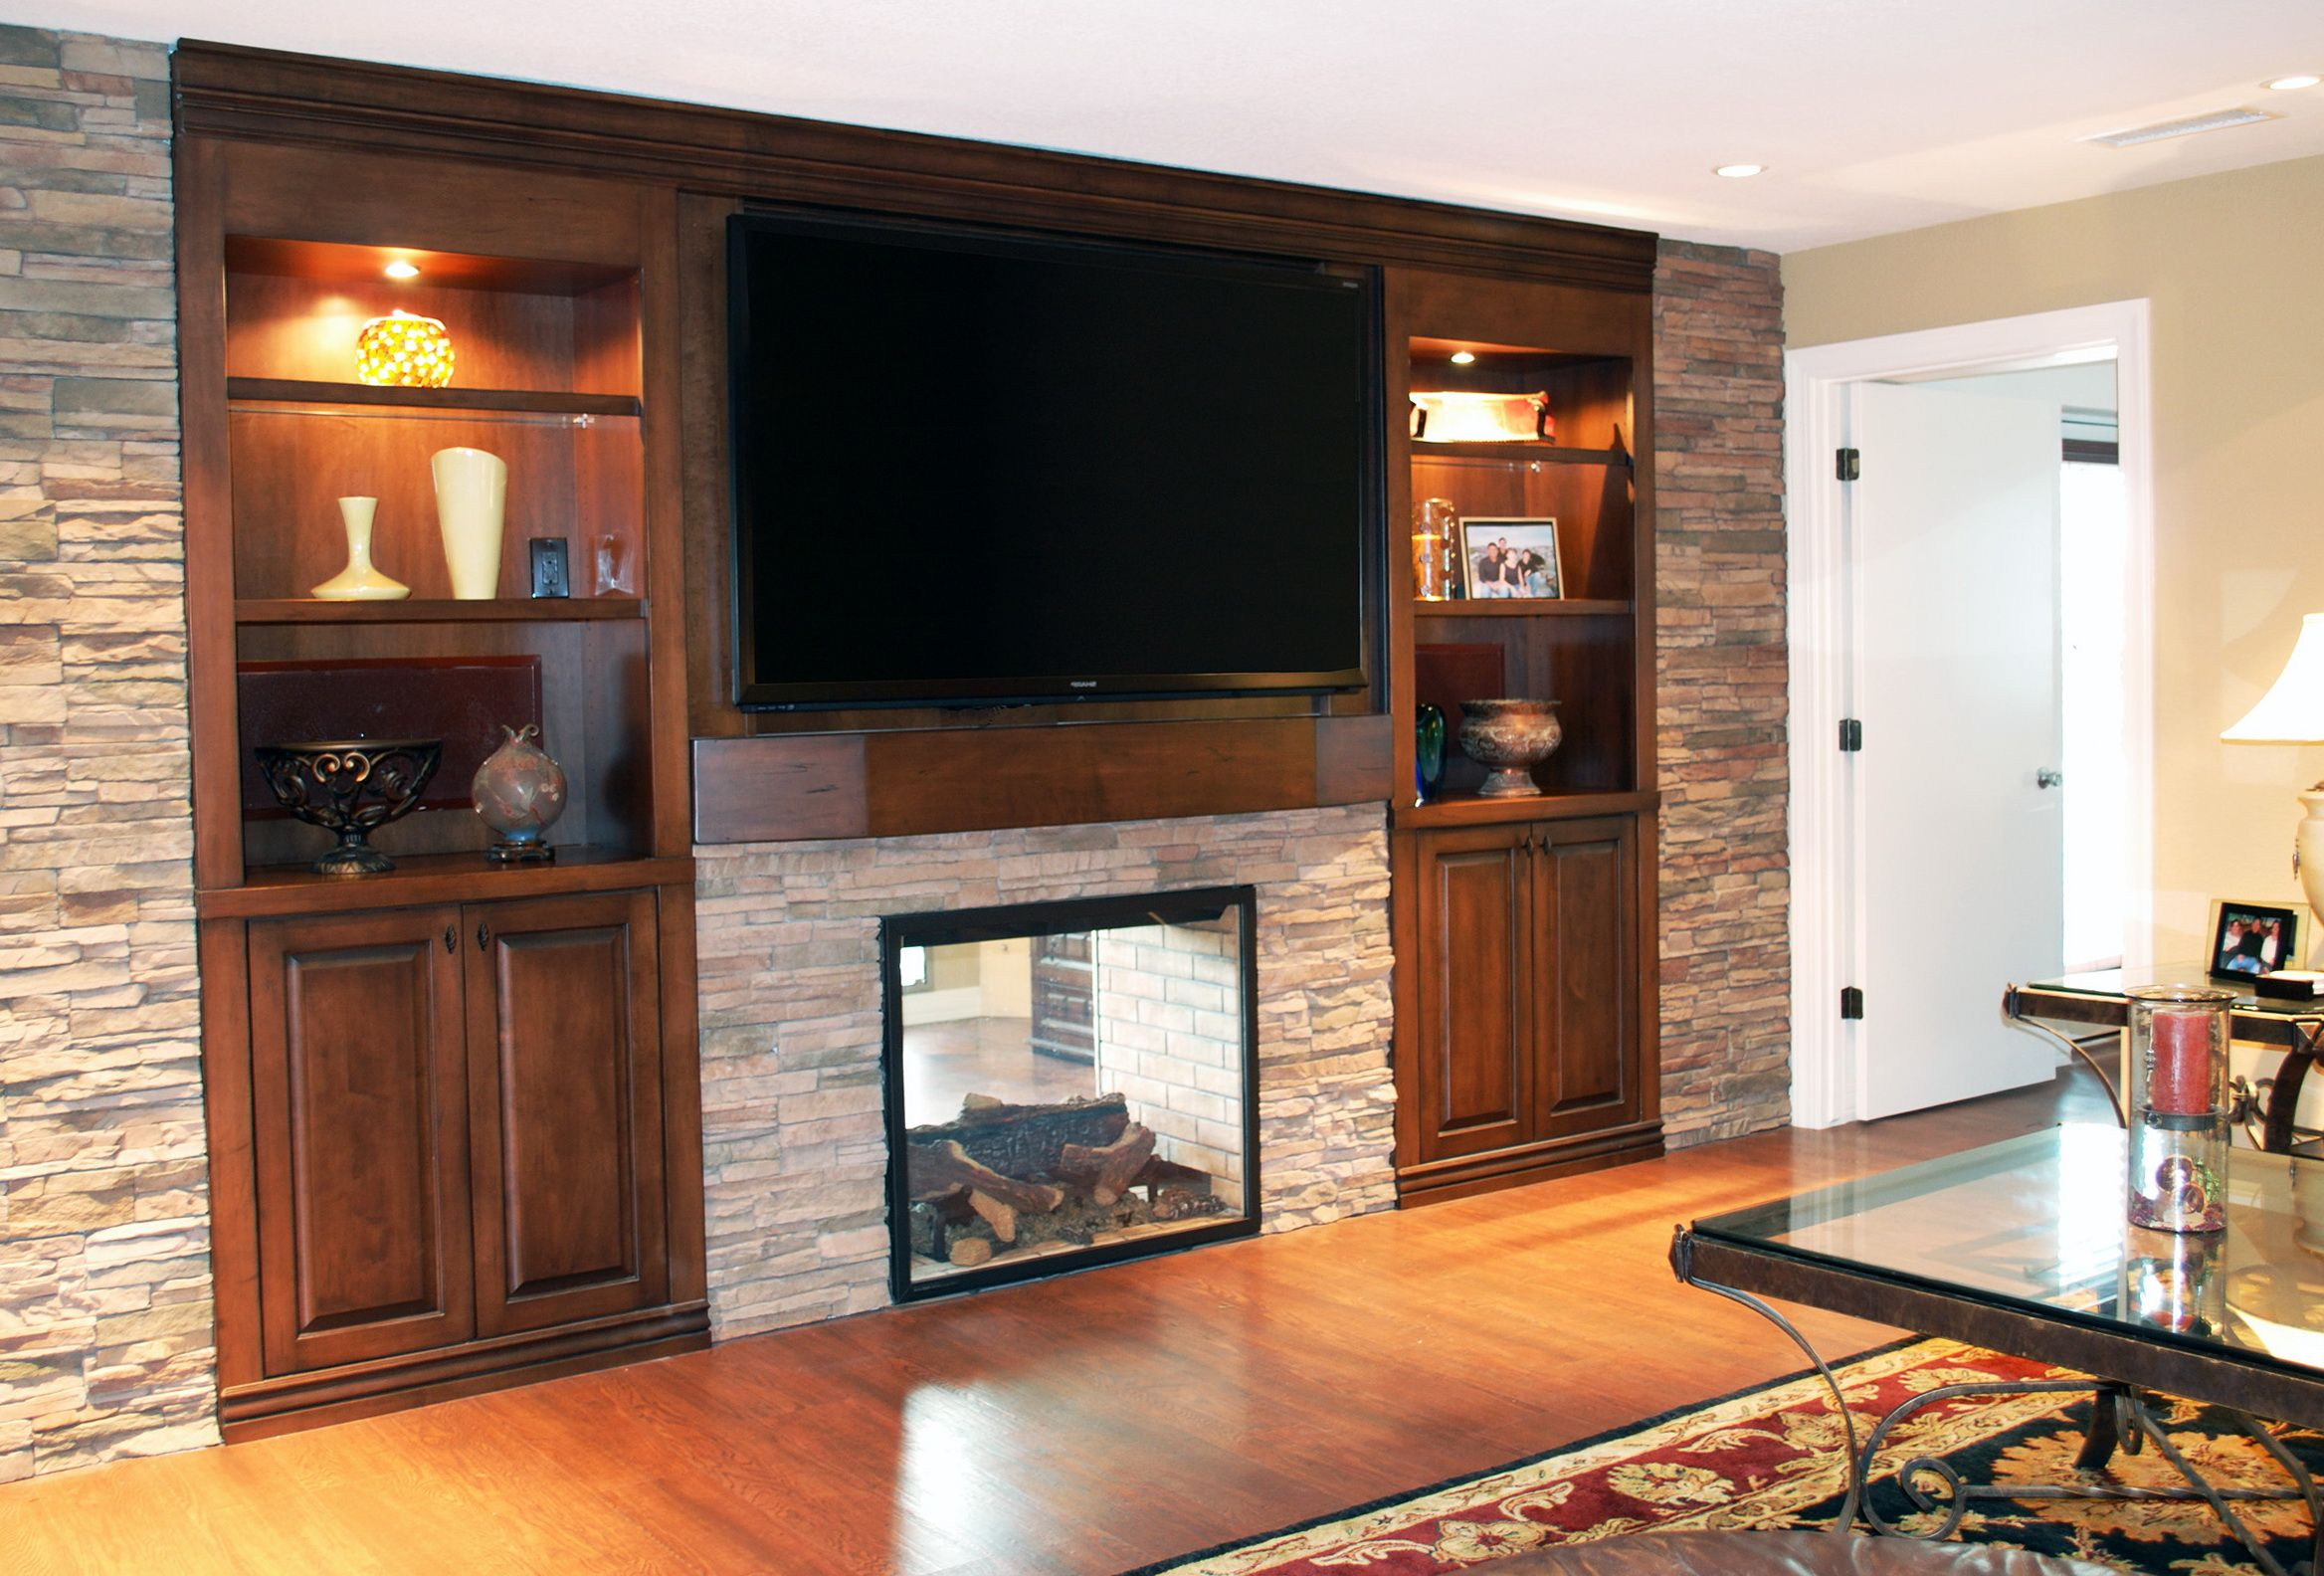 vintage decor - Built In Entertainment Center Design Ideas